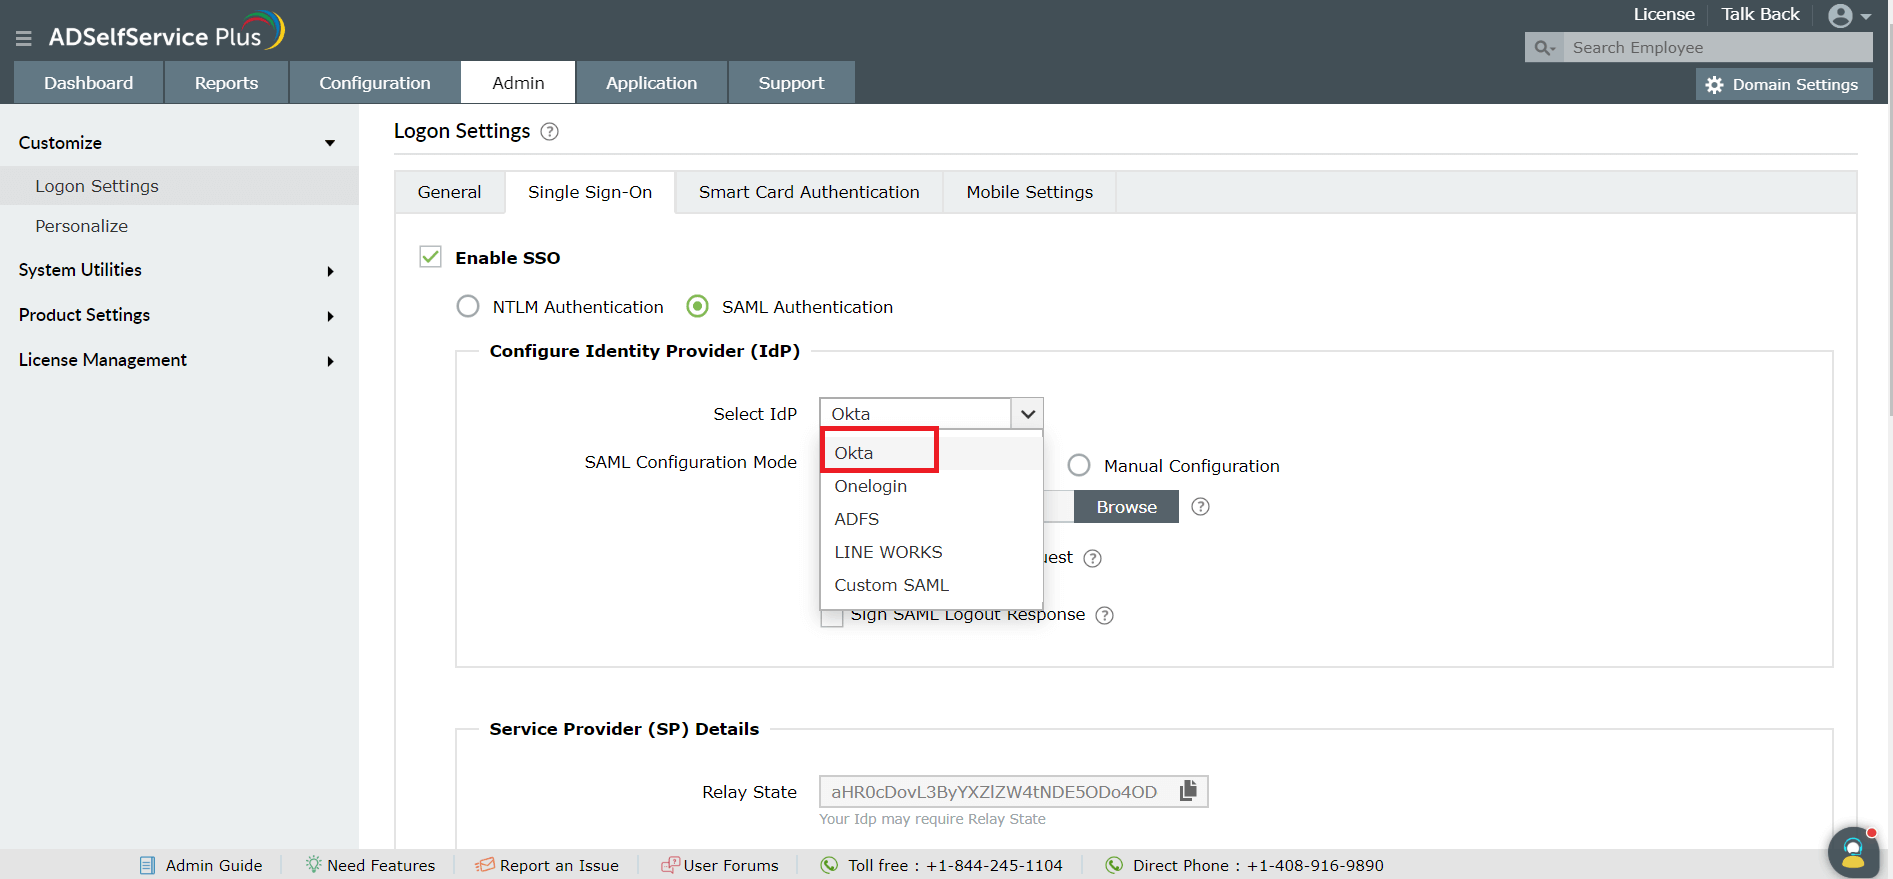 How to enable SAML-based SSO for ADSelfService Plus using Okta?